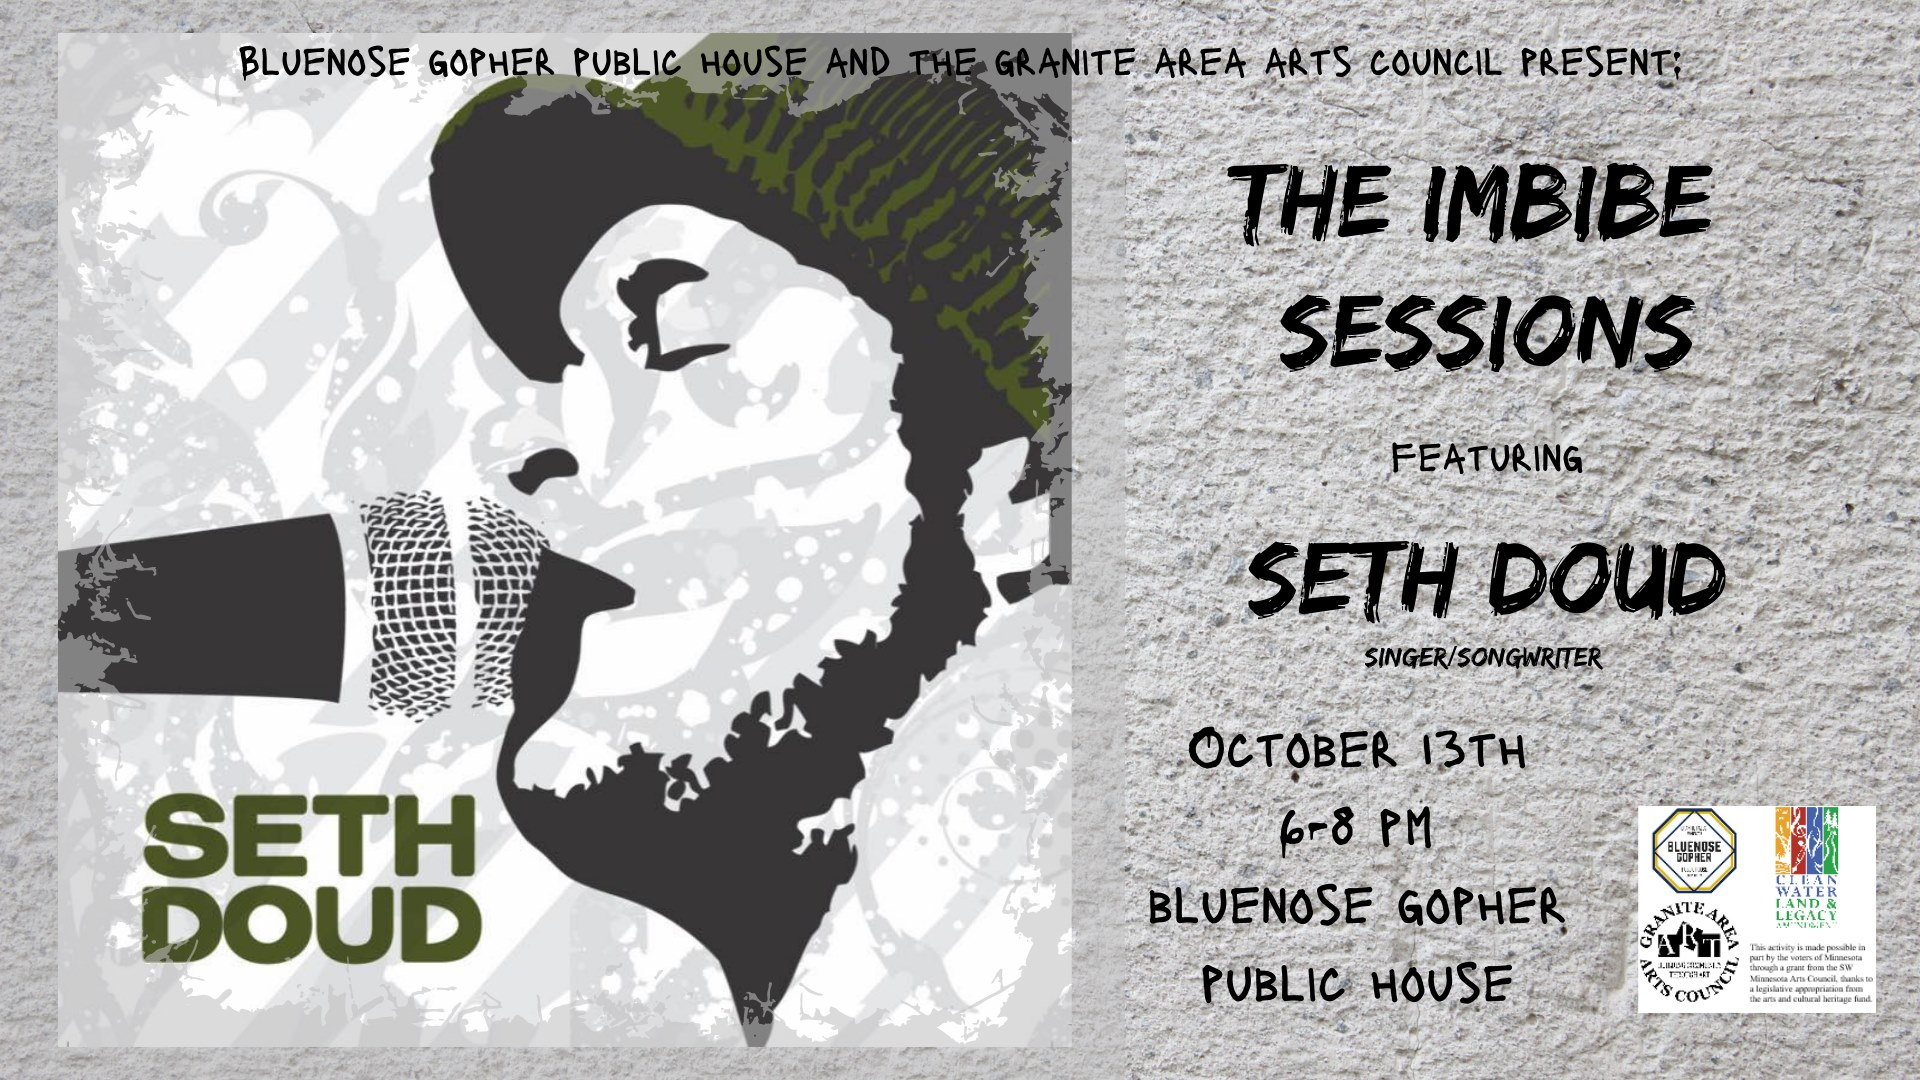 Bluenose Gopher Public House and the Granite Area Arts Council Present: The Imbibe Sessions featuring Seth Doud, Singer/Songwriter. October 13, 6-8 pm.